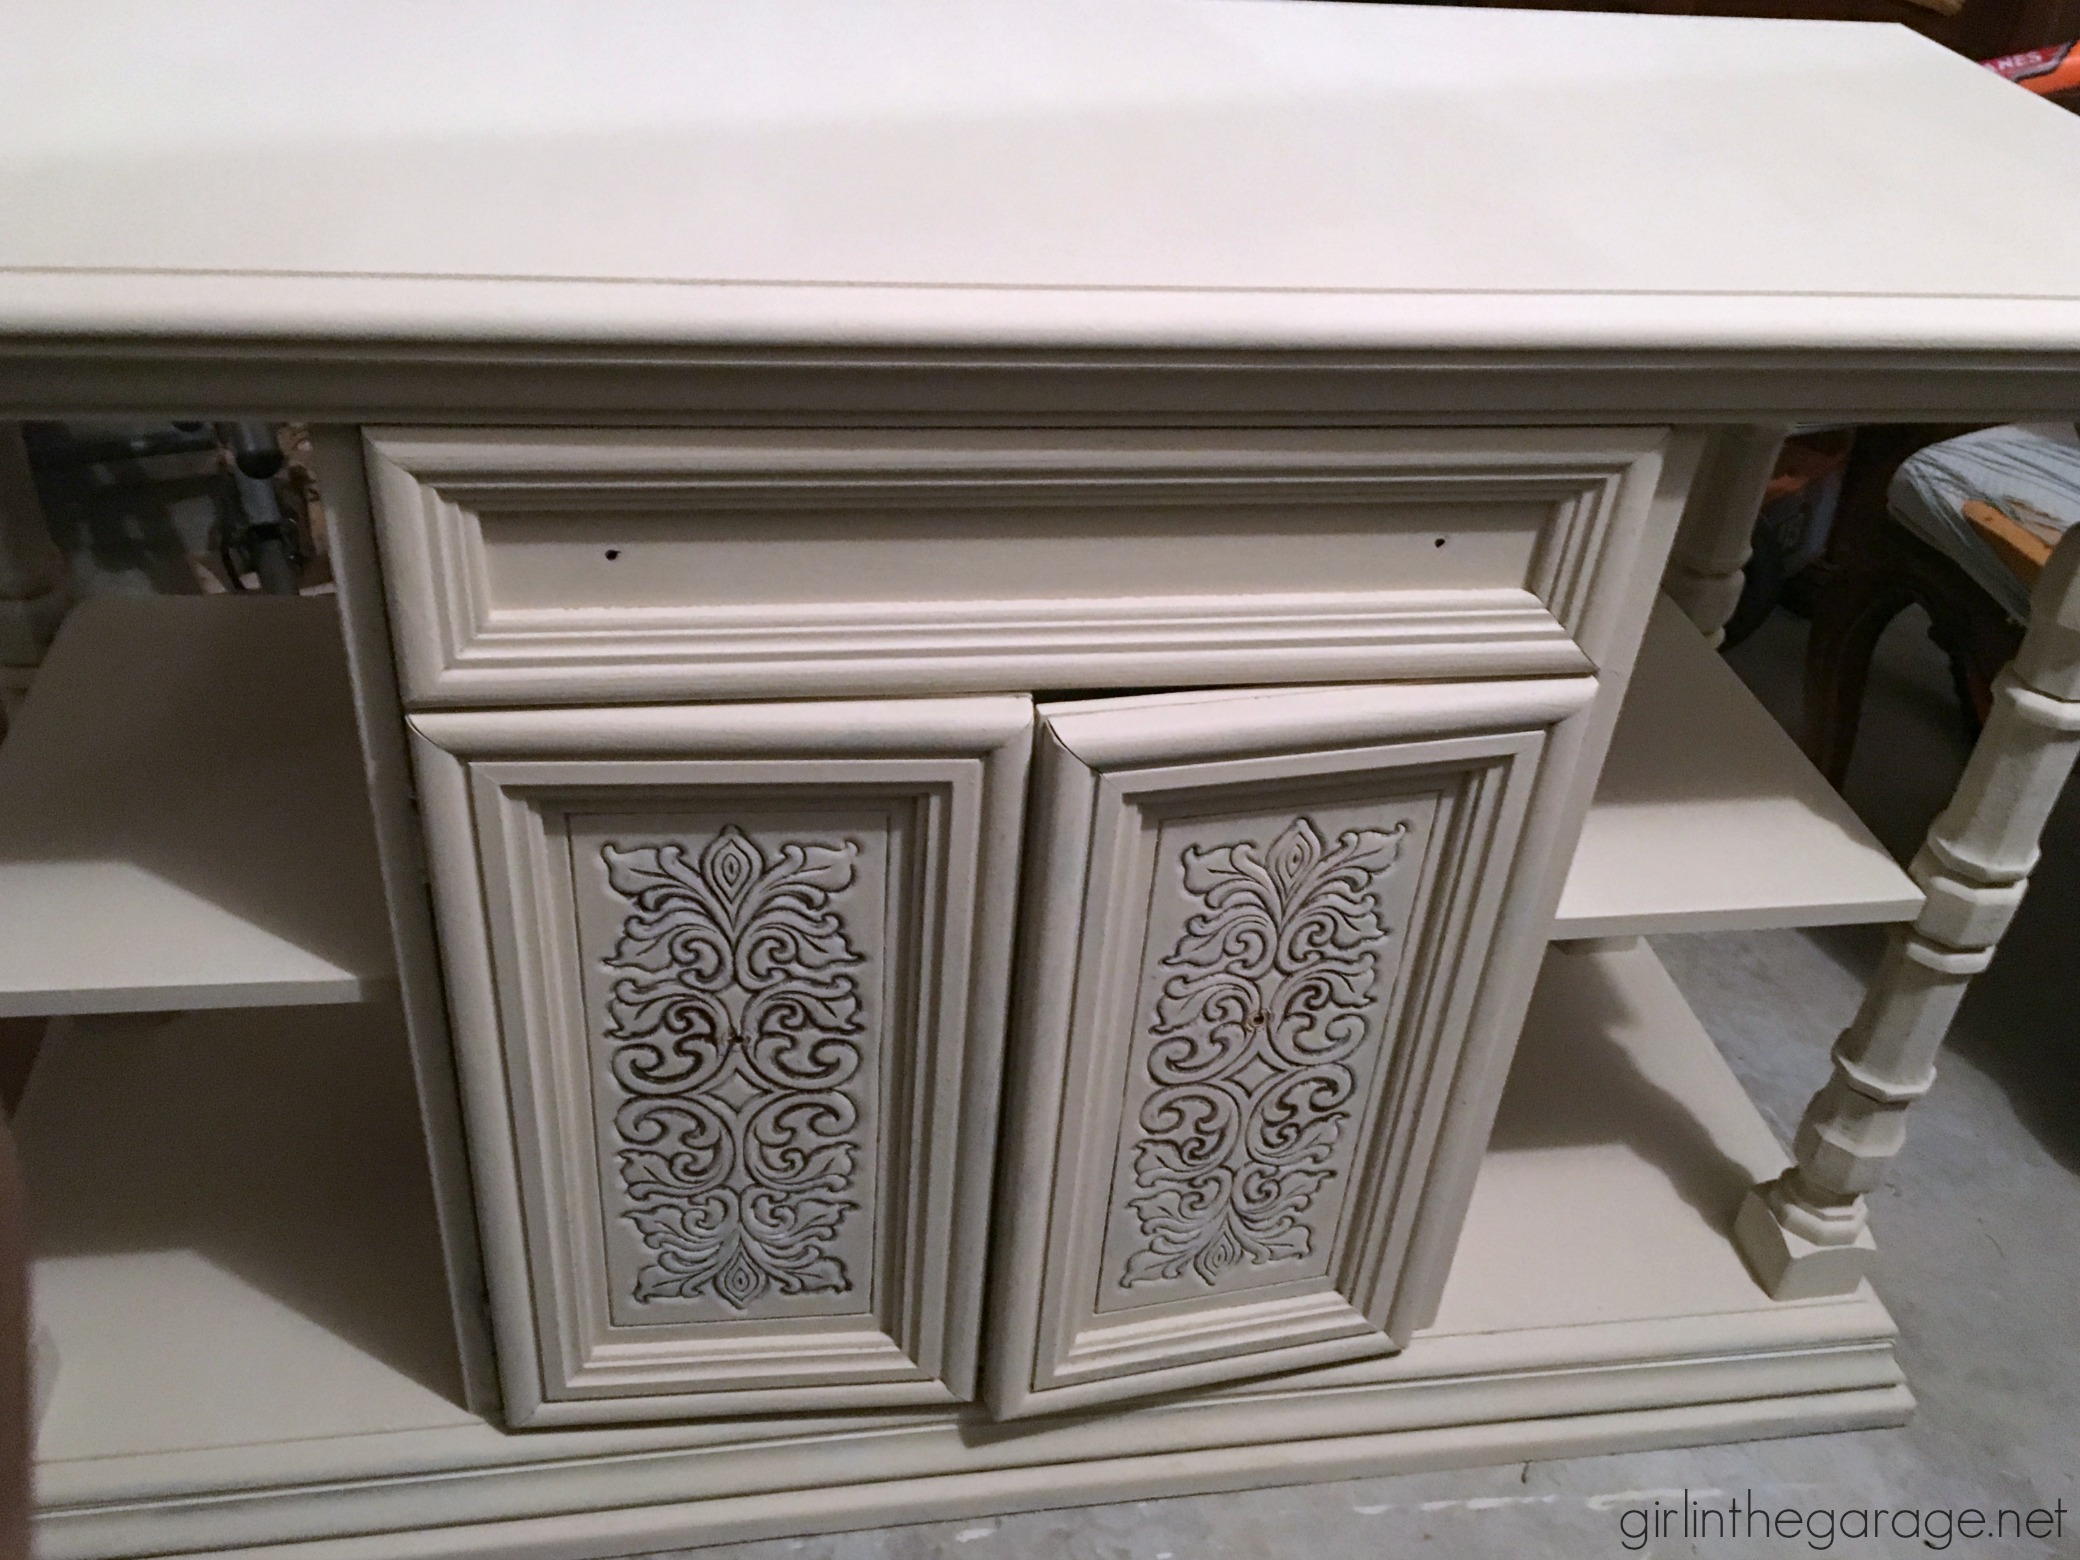 Dry Brushed Farmhouse Buffet Makeover - Girl in the Garage